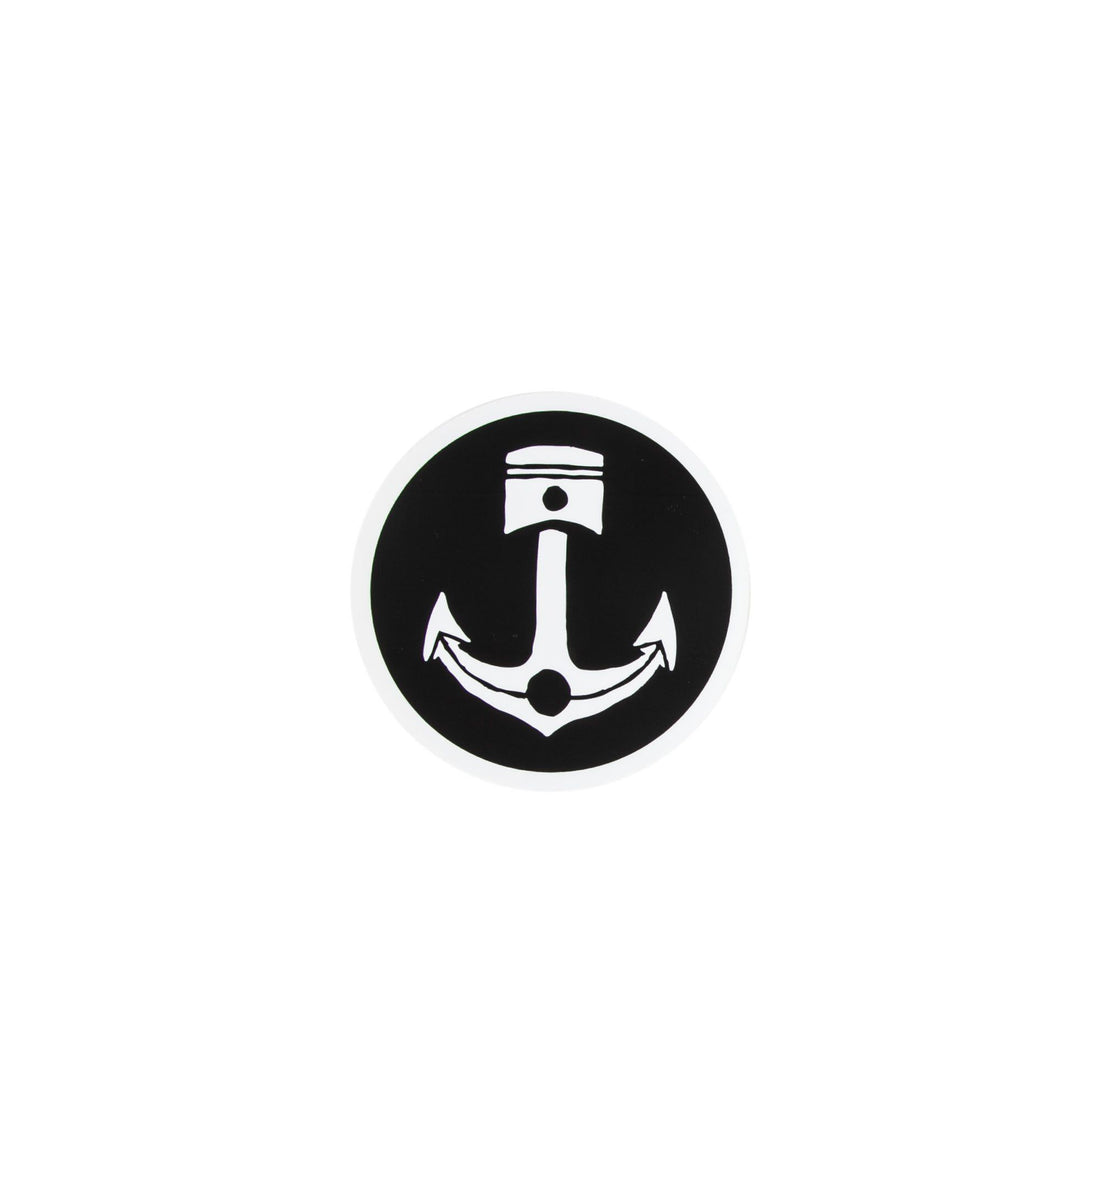 Anchor Piston Sticker - Stickers/Pins/Patches - Iron and Resin